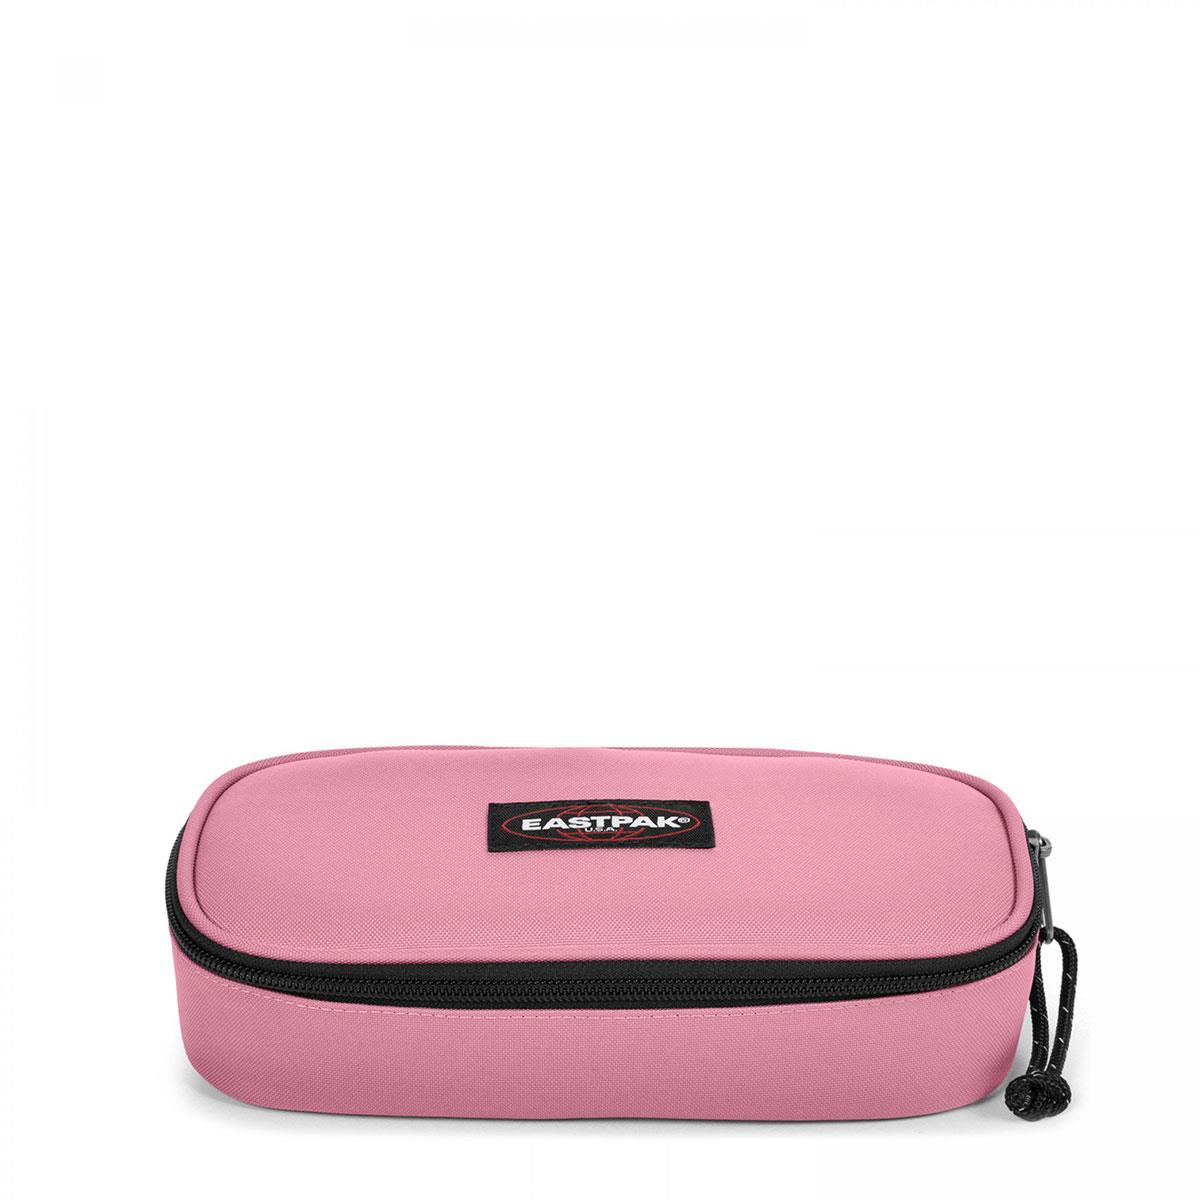 Eastpak OVAL SINGLE Kalem Çantası EK000717B561